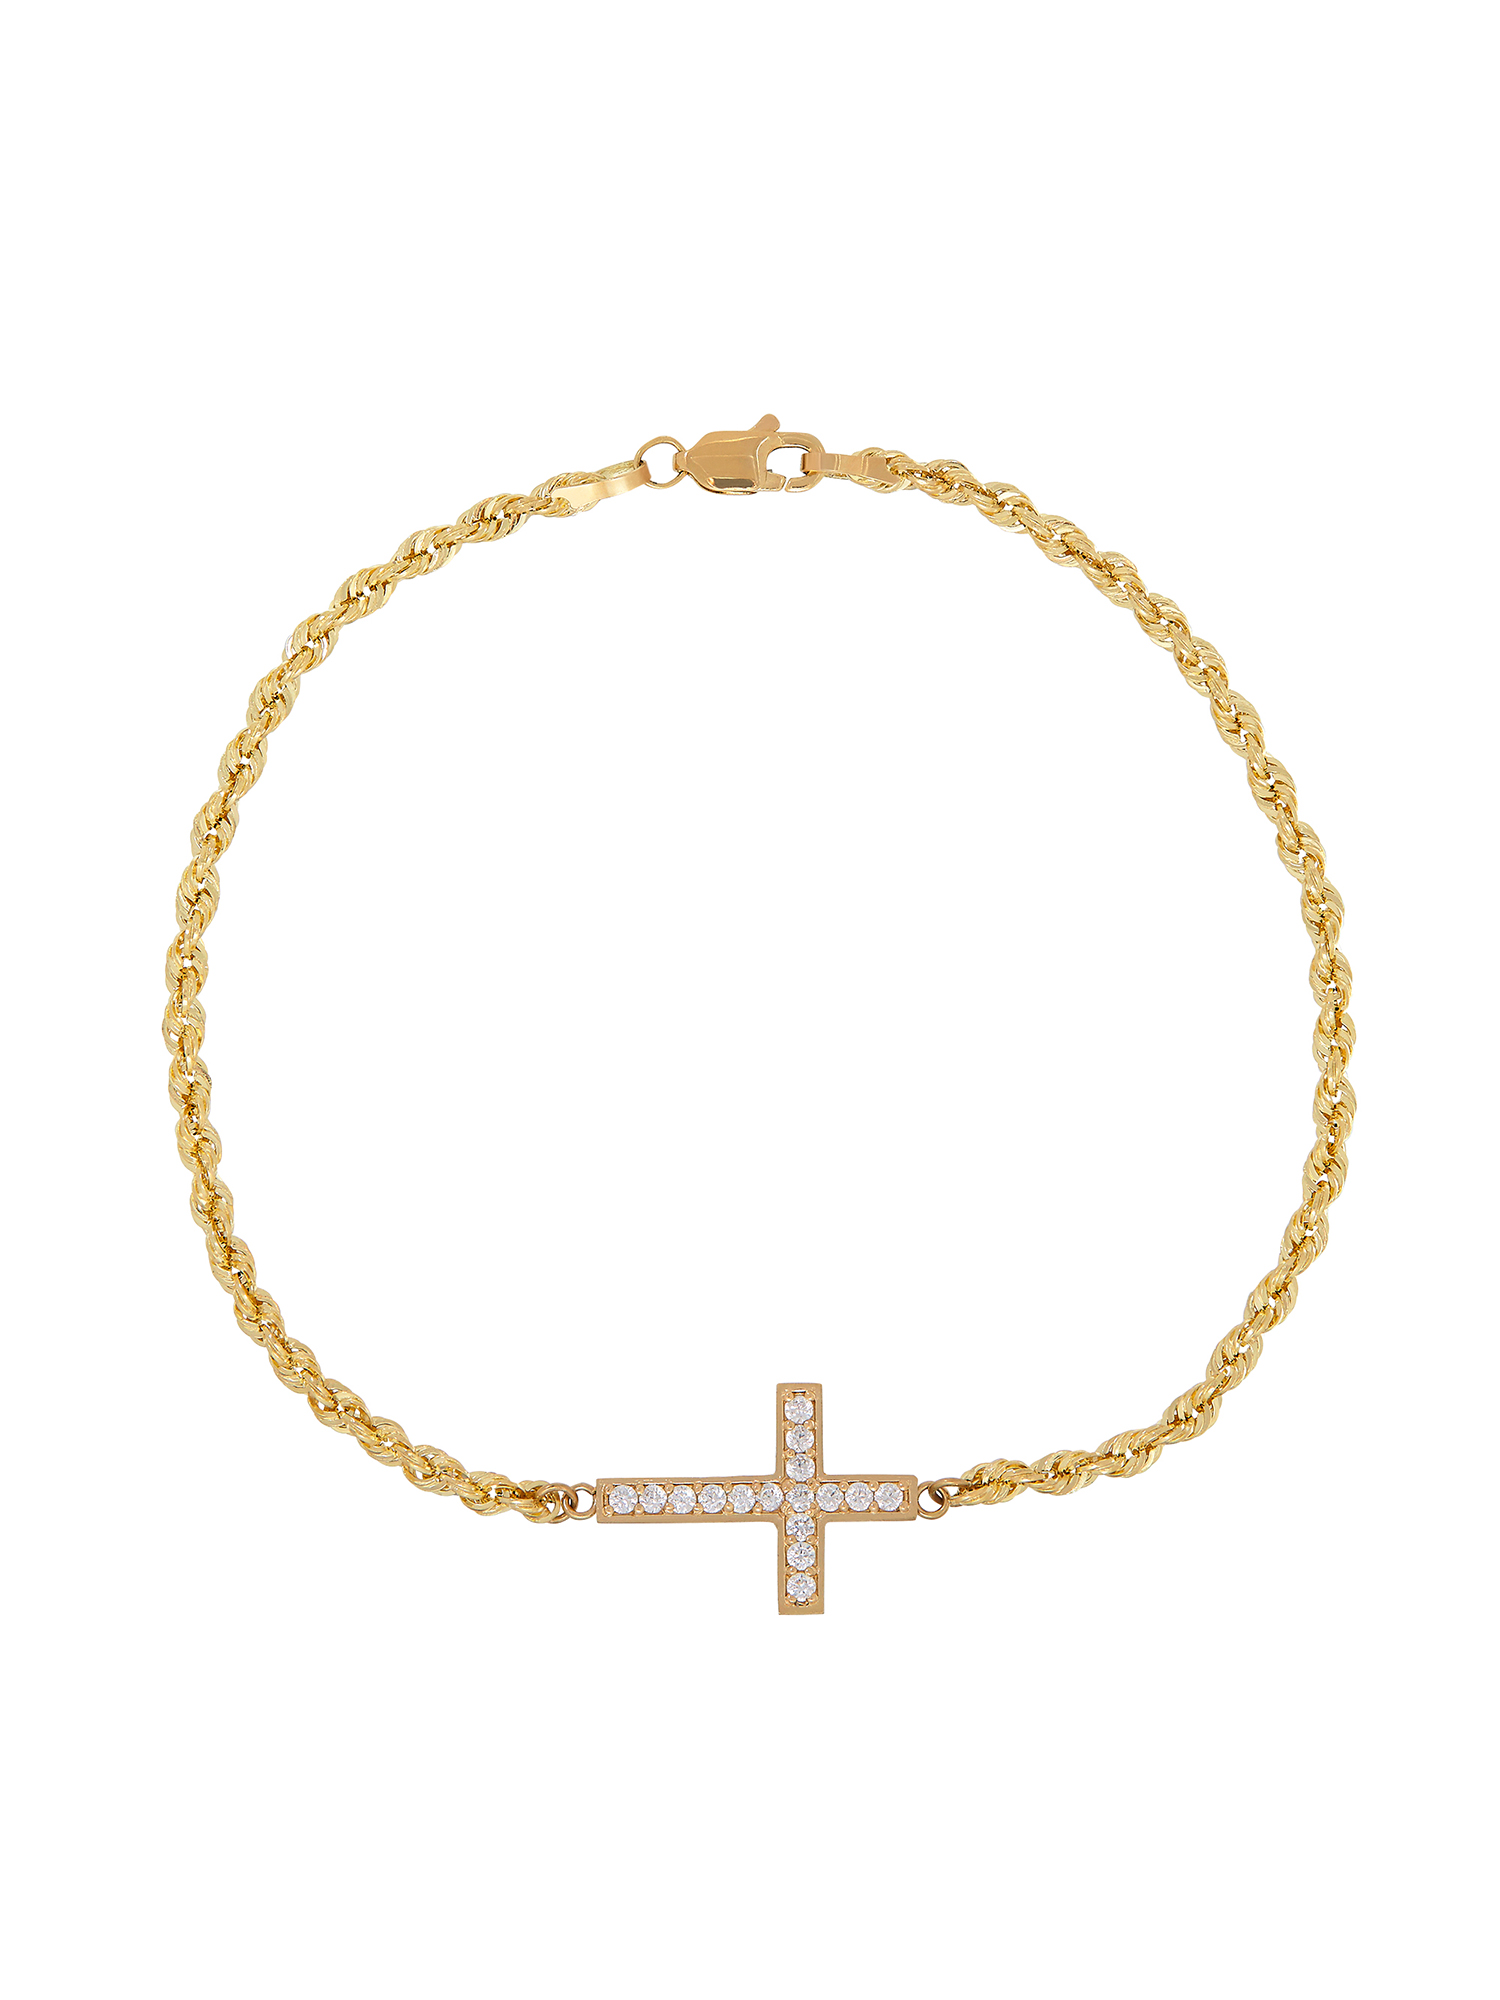 Simply Gold™ 10K Yellow Gold Sideways CZ Cross Bracelet, 7.5""